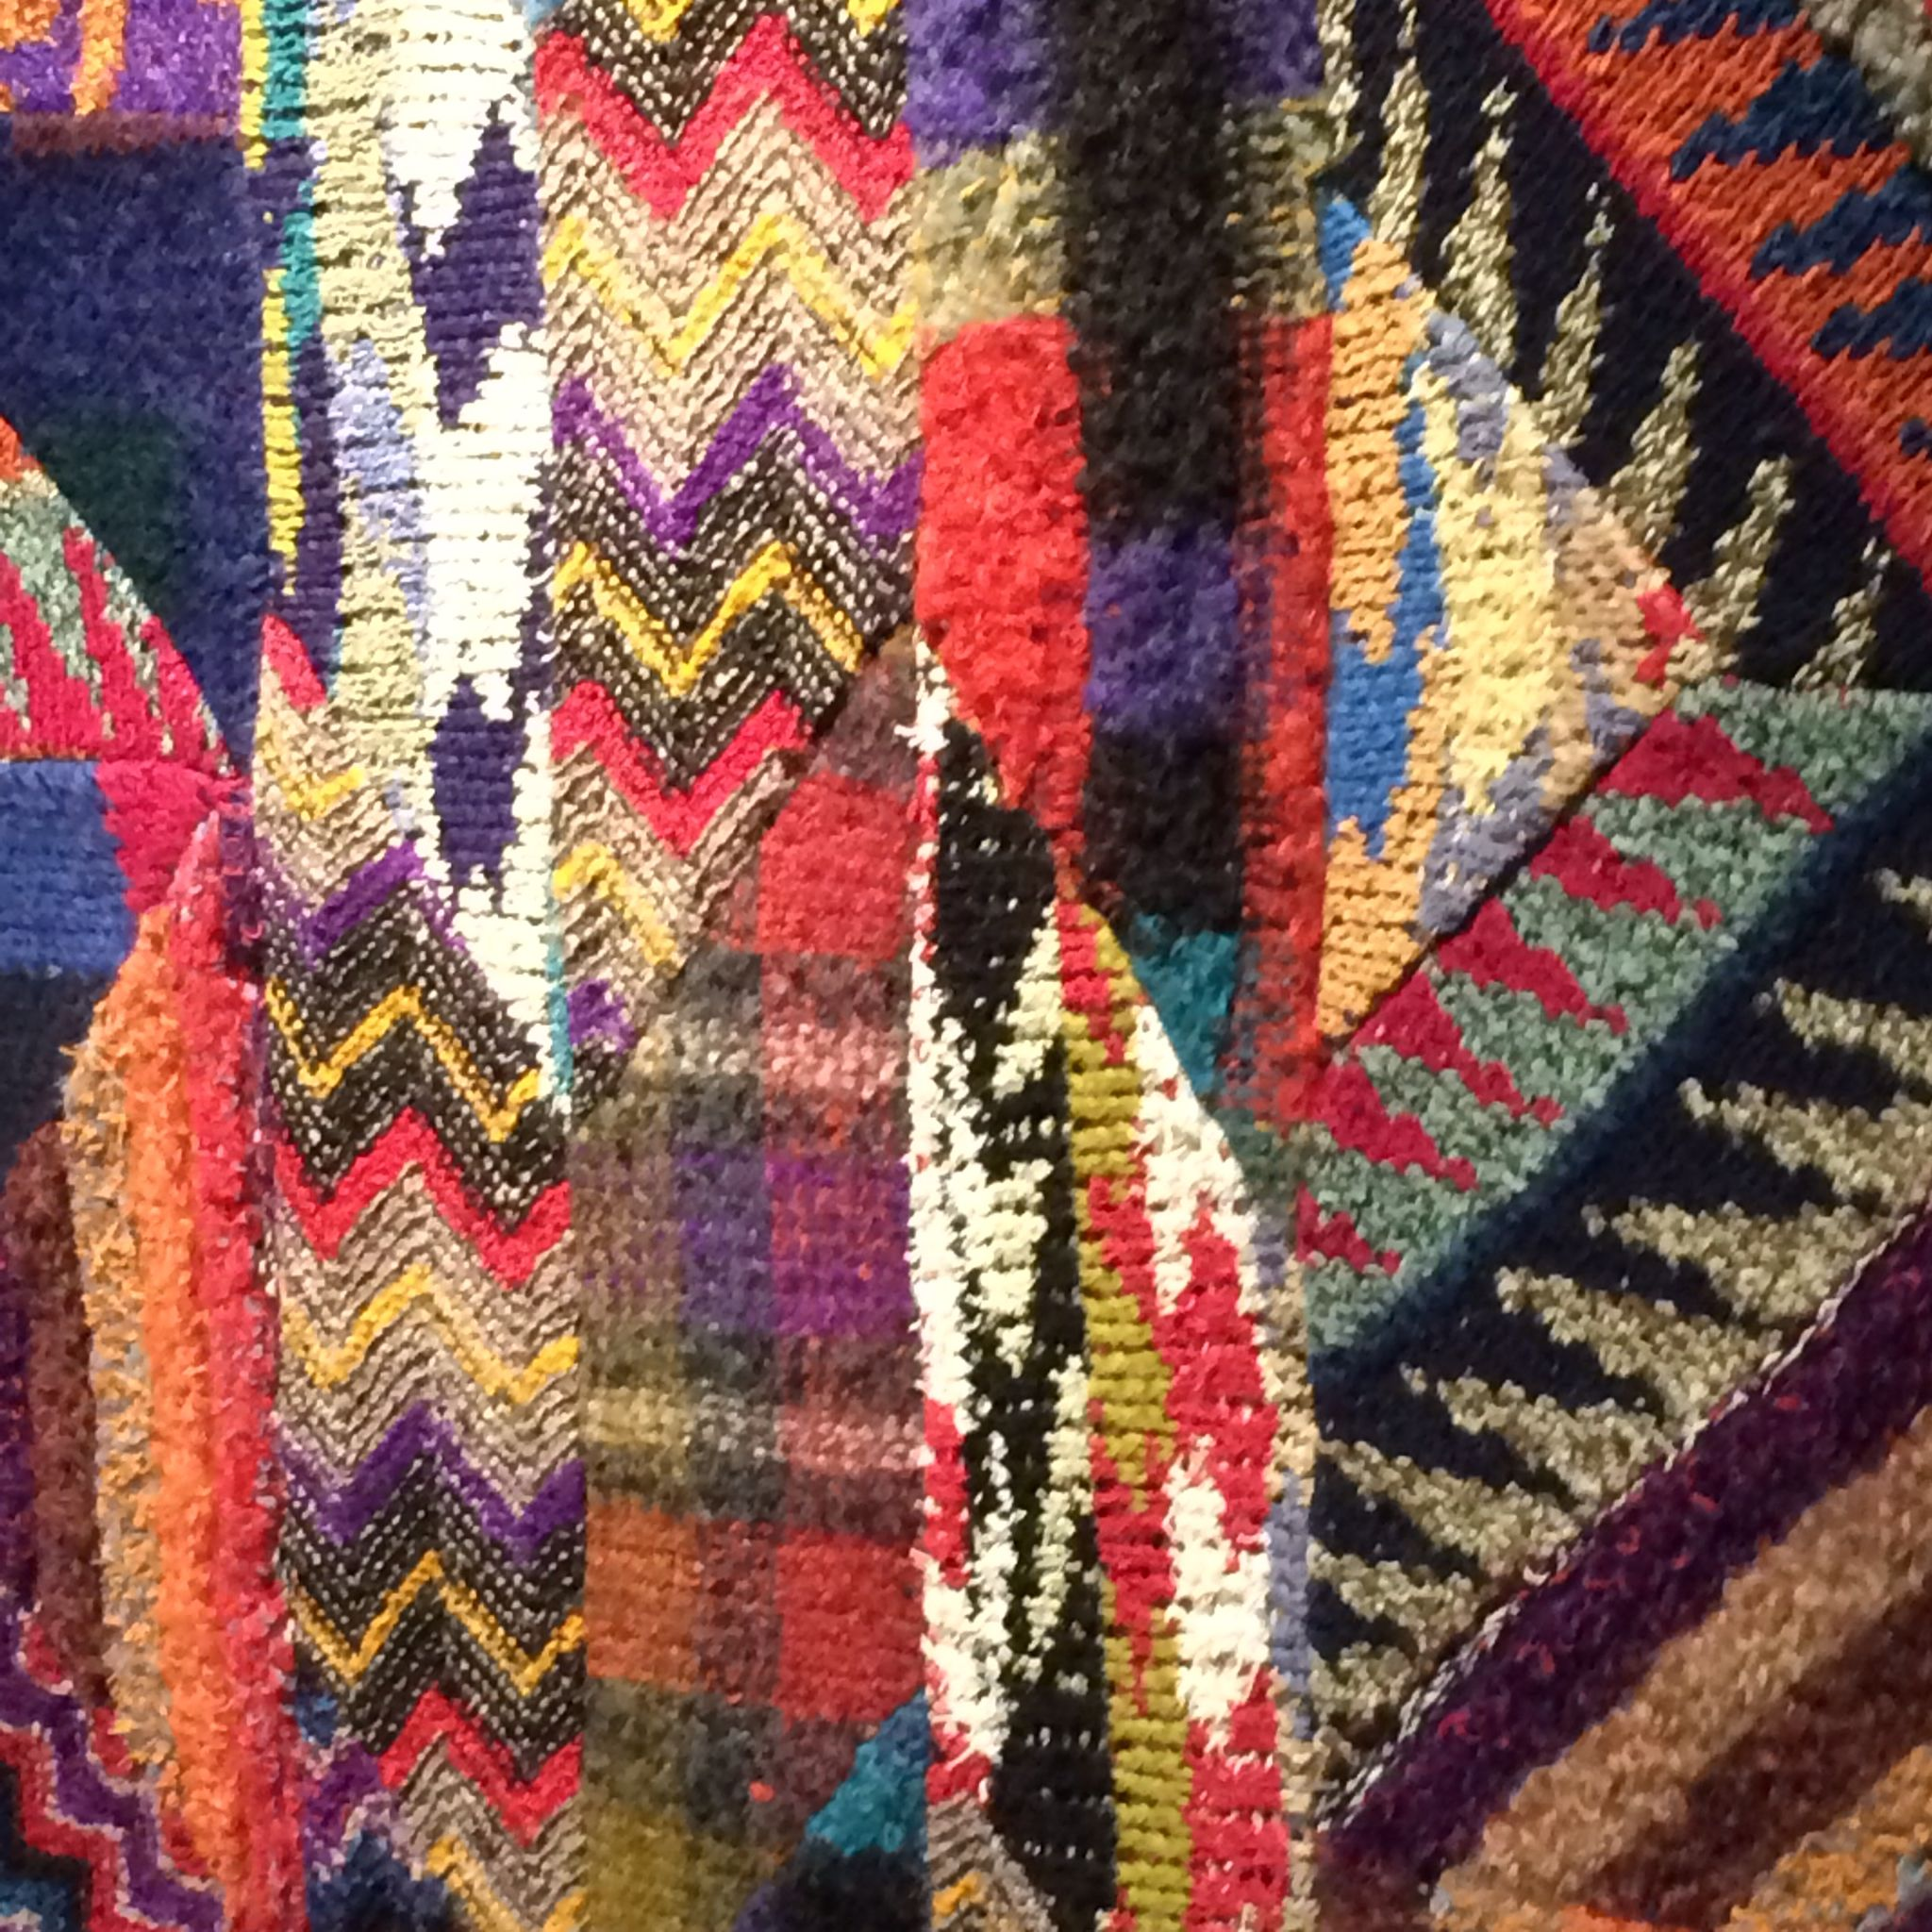 Missoni taken at the Fashion and Textiles Museum, Bermondsey St.